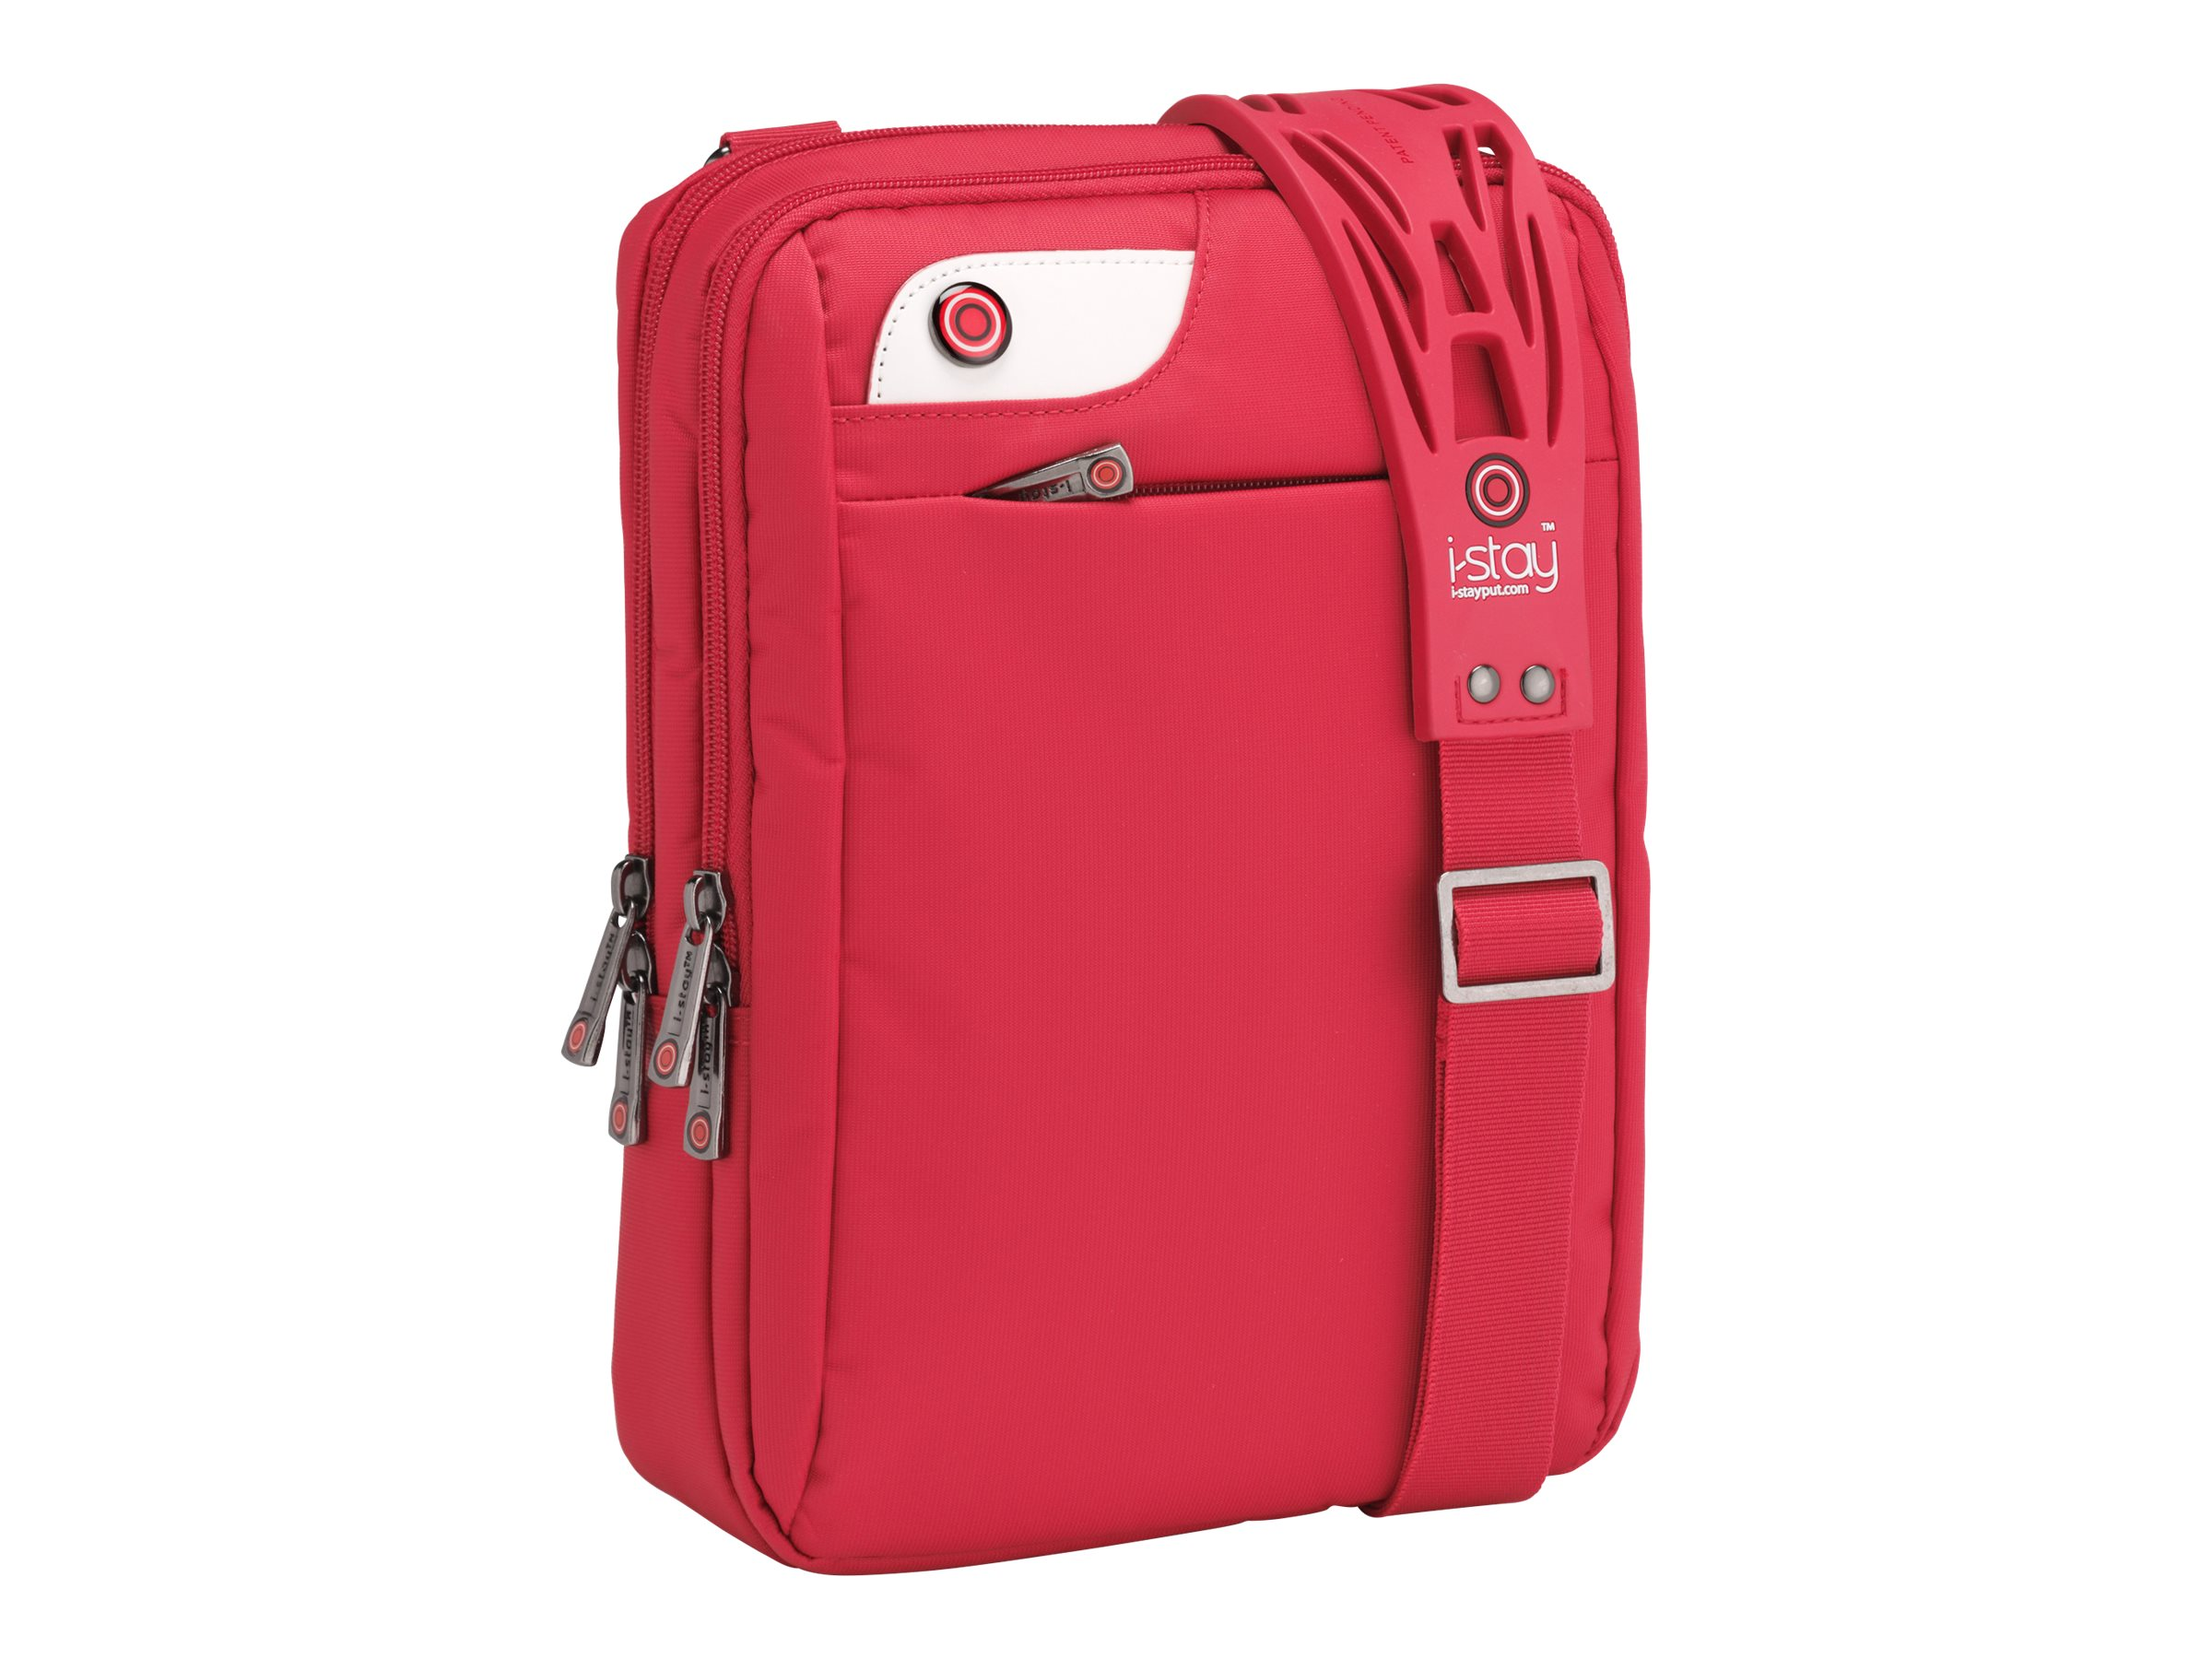 Falcon i-stay - Schultertasche für Tablet / Notebook - Nylon, Polyester - Rot